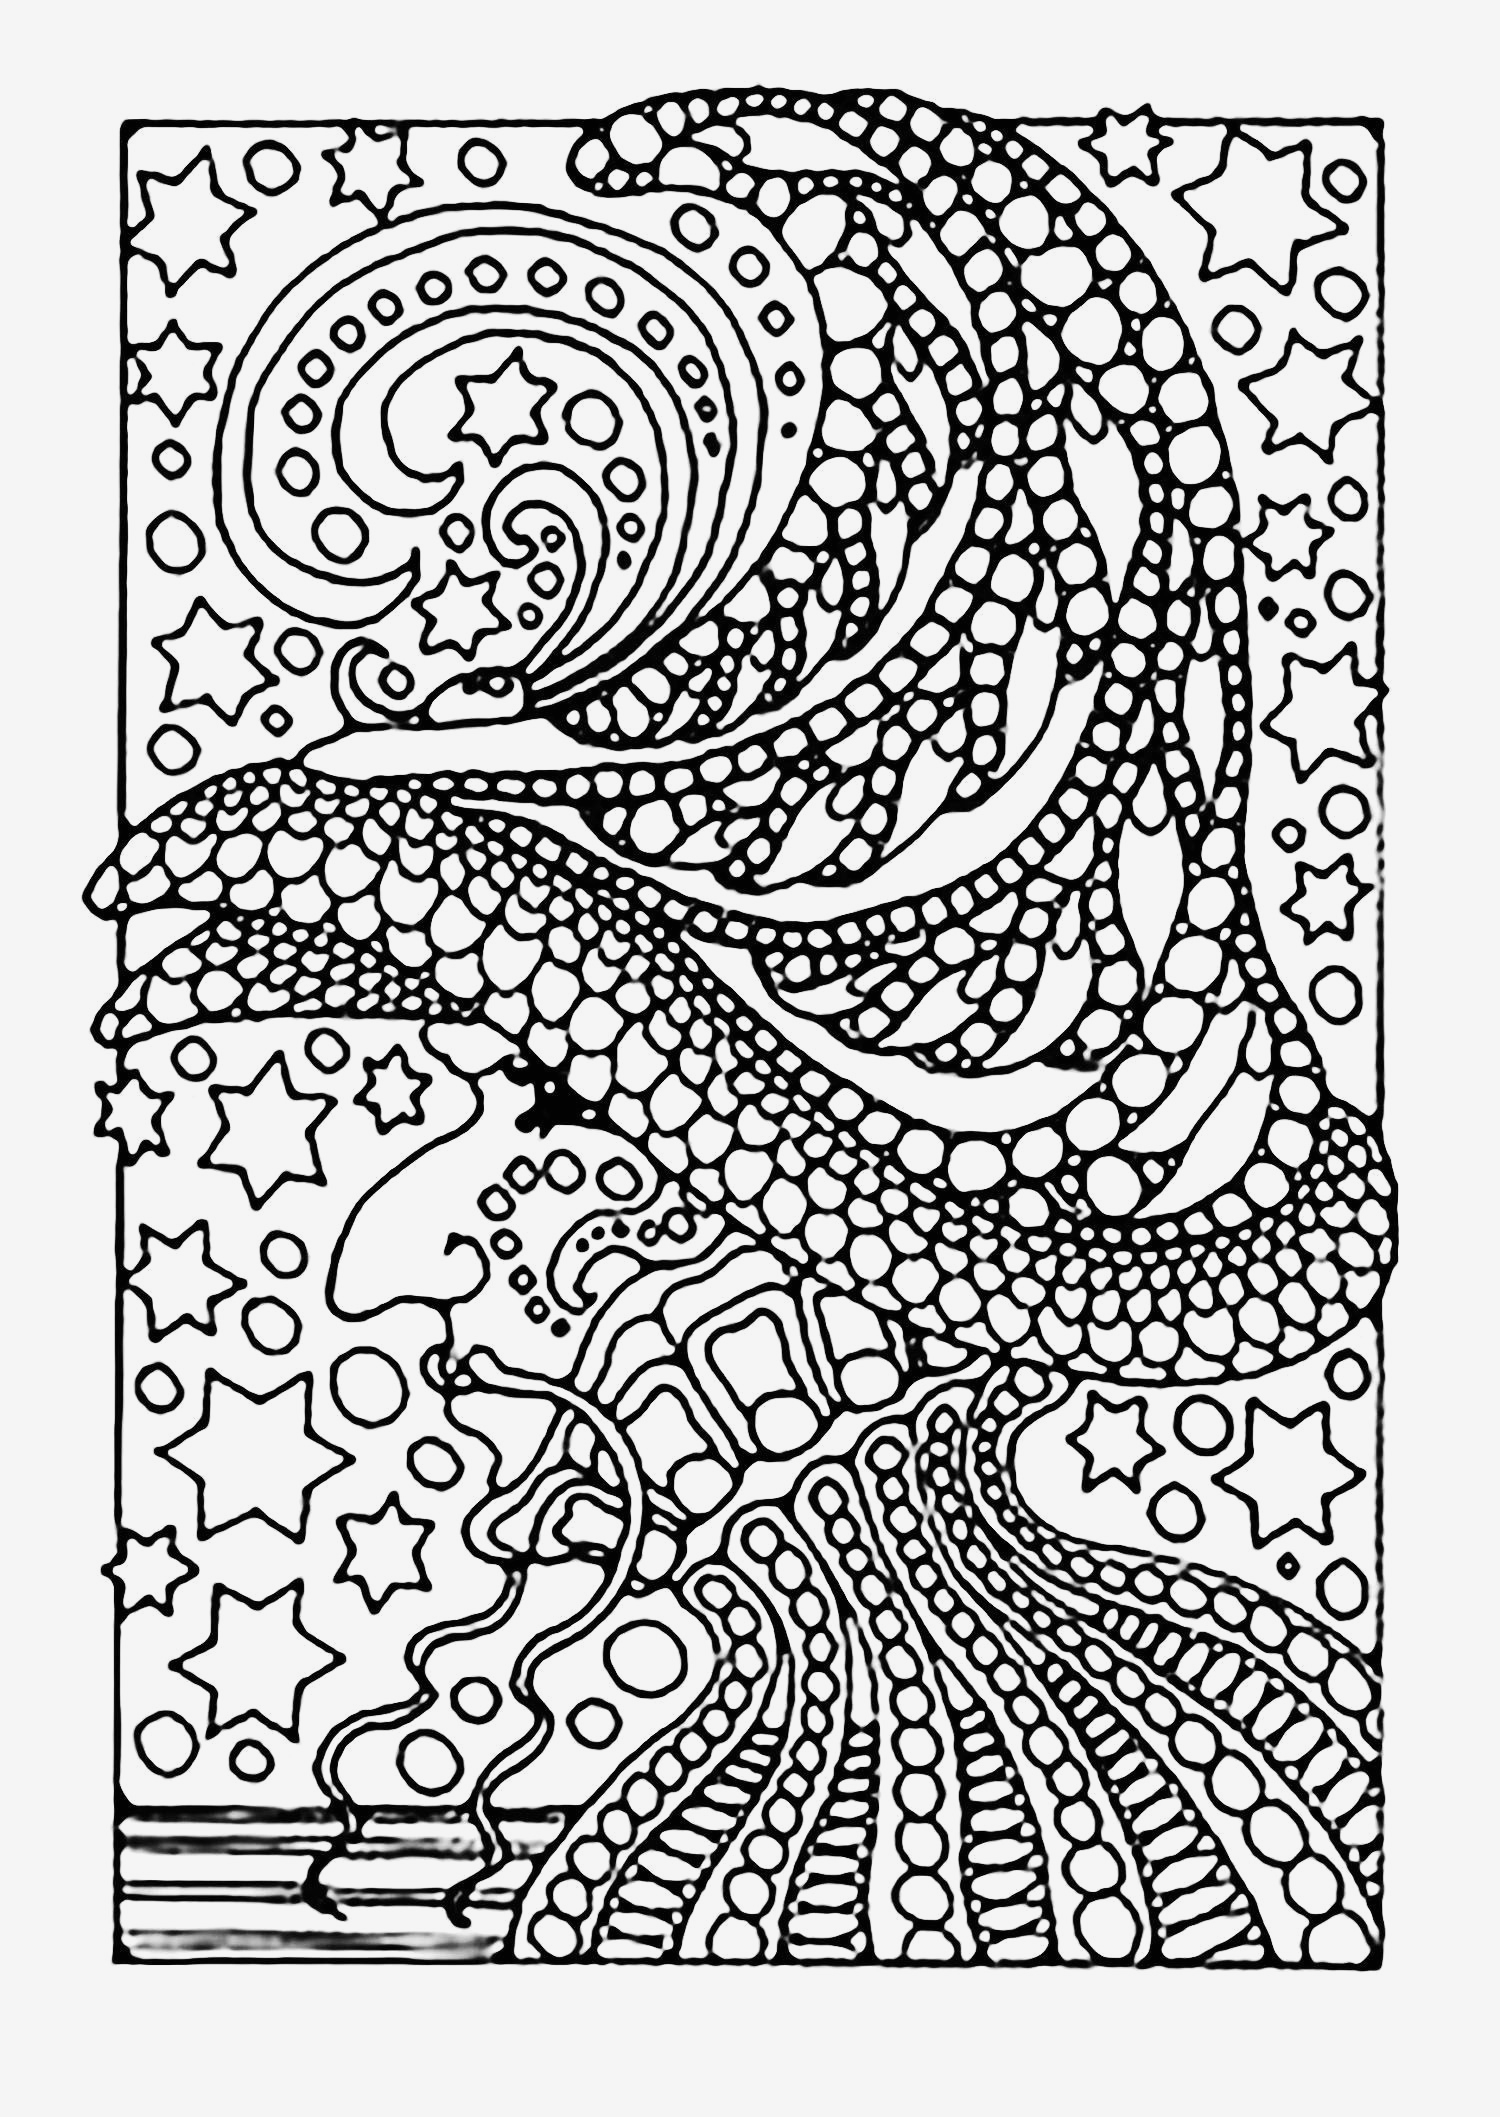 labor day coloring pages Download-Flame Coloring Page Free Printable Coloring Pags Best Everything Pages Lovely Page 0d Free Image 3-d